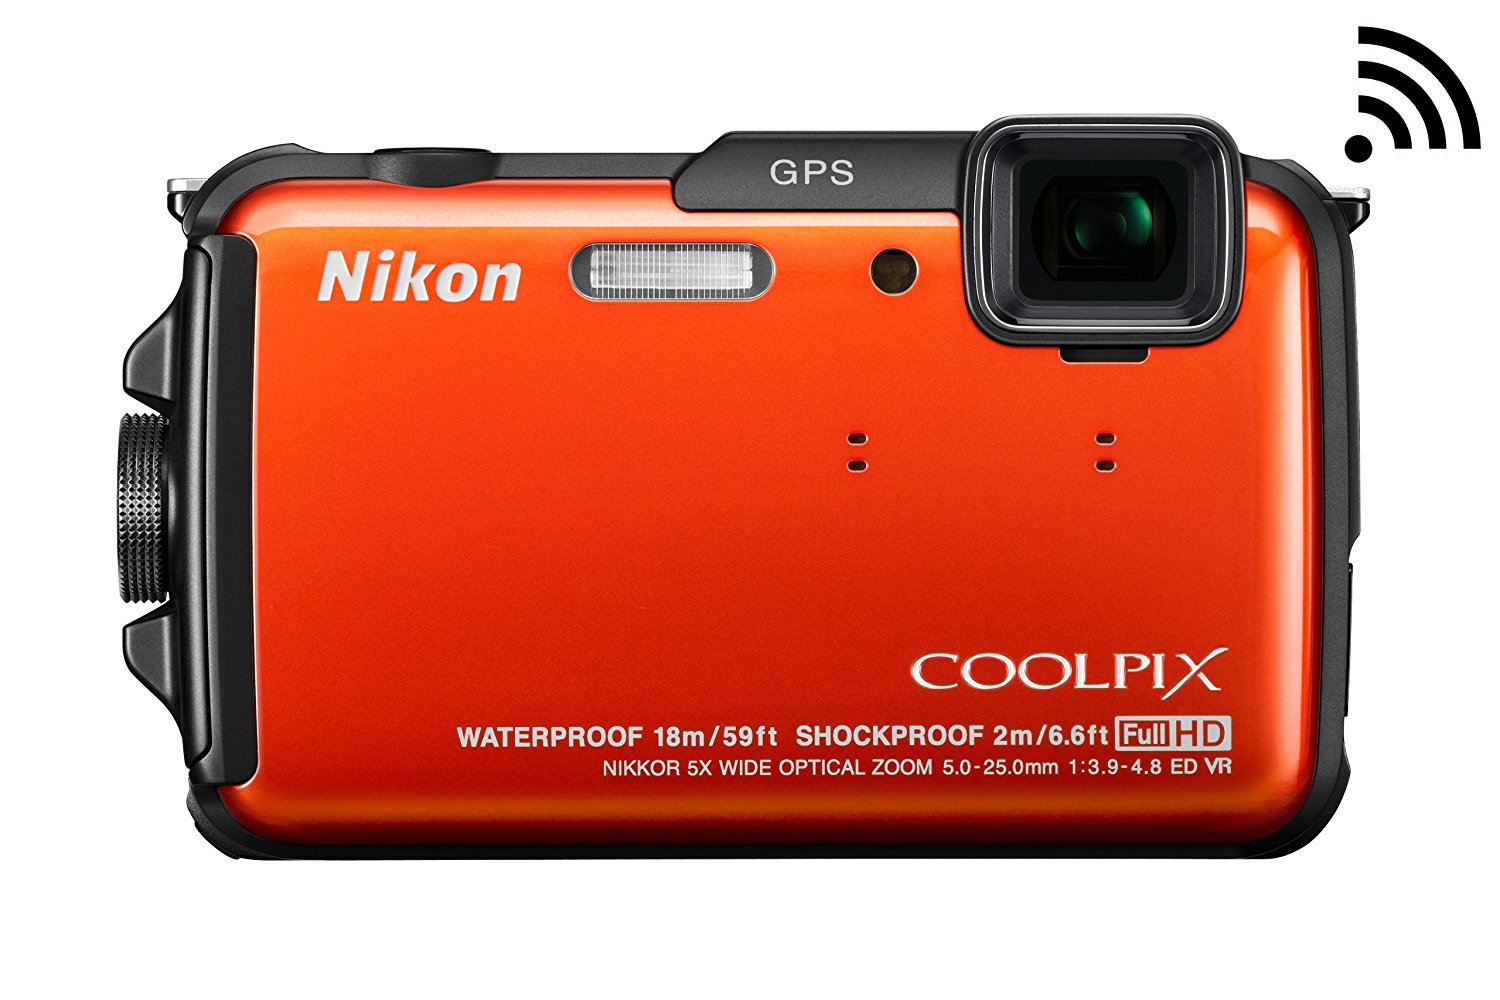 Nikon COOLPIX AW110 Wi-Fi and Waterproof